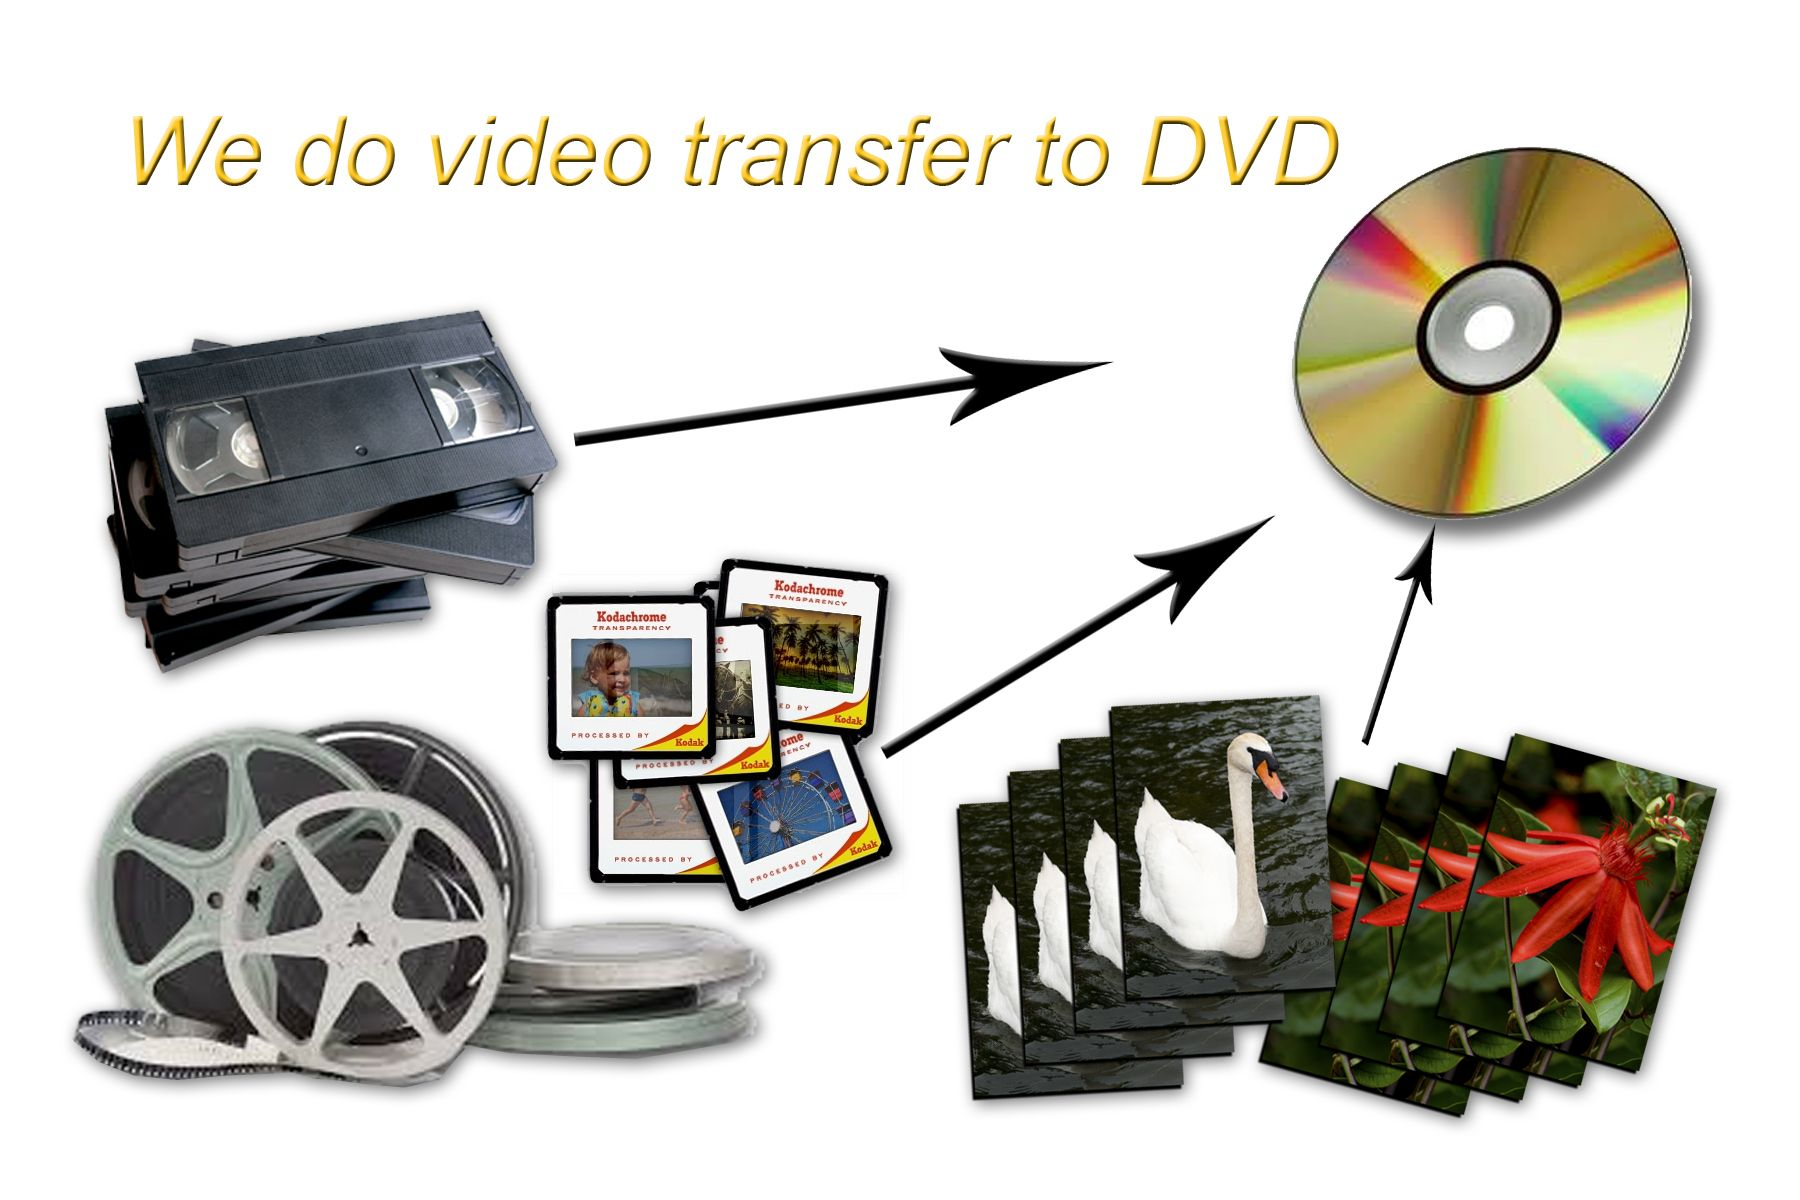 16mm Super 8 And 8mm Film To Dvd Conversion Service Vhs To Dvd Video Transfer Dvd